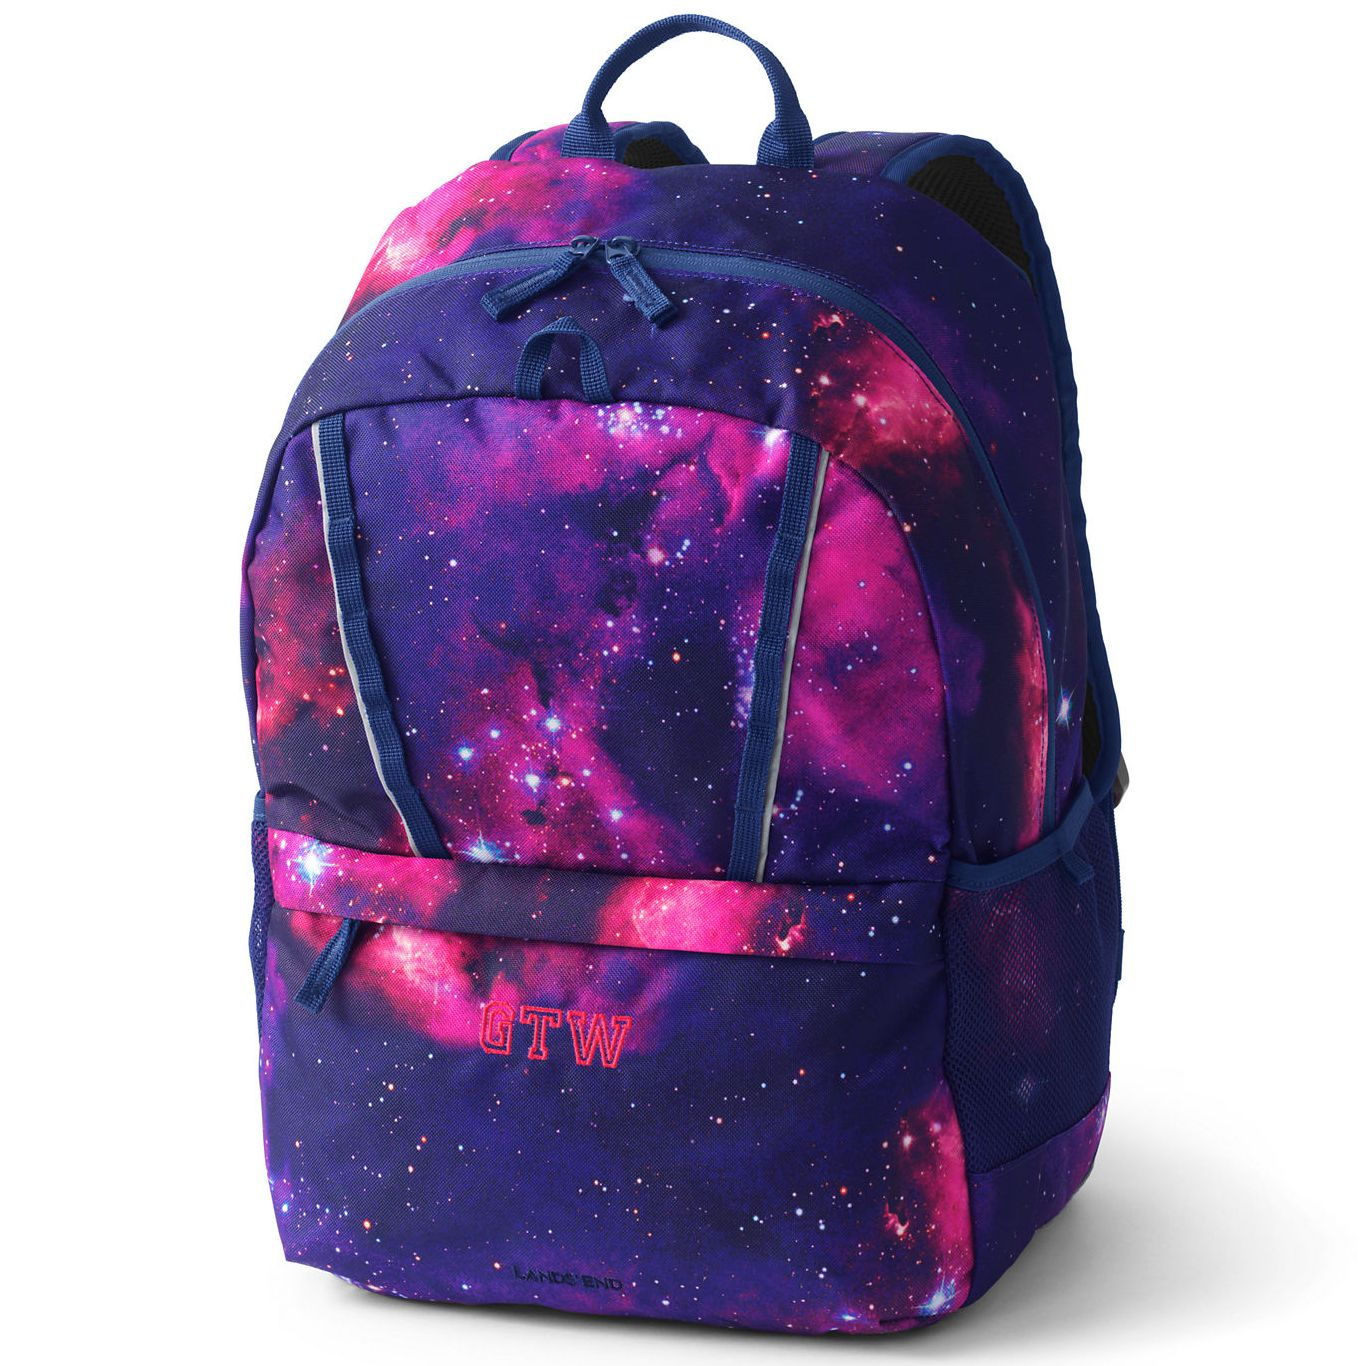 land's end backpack for kids